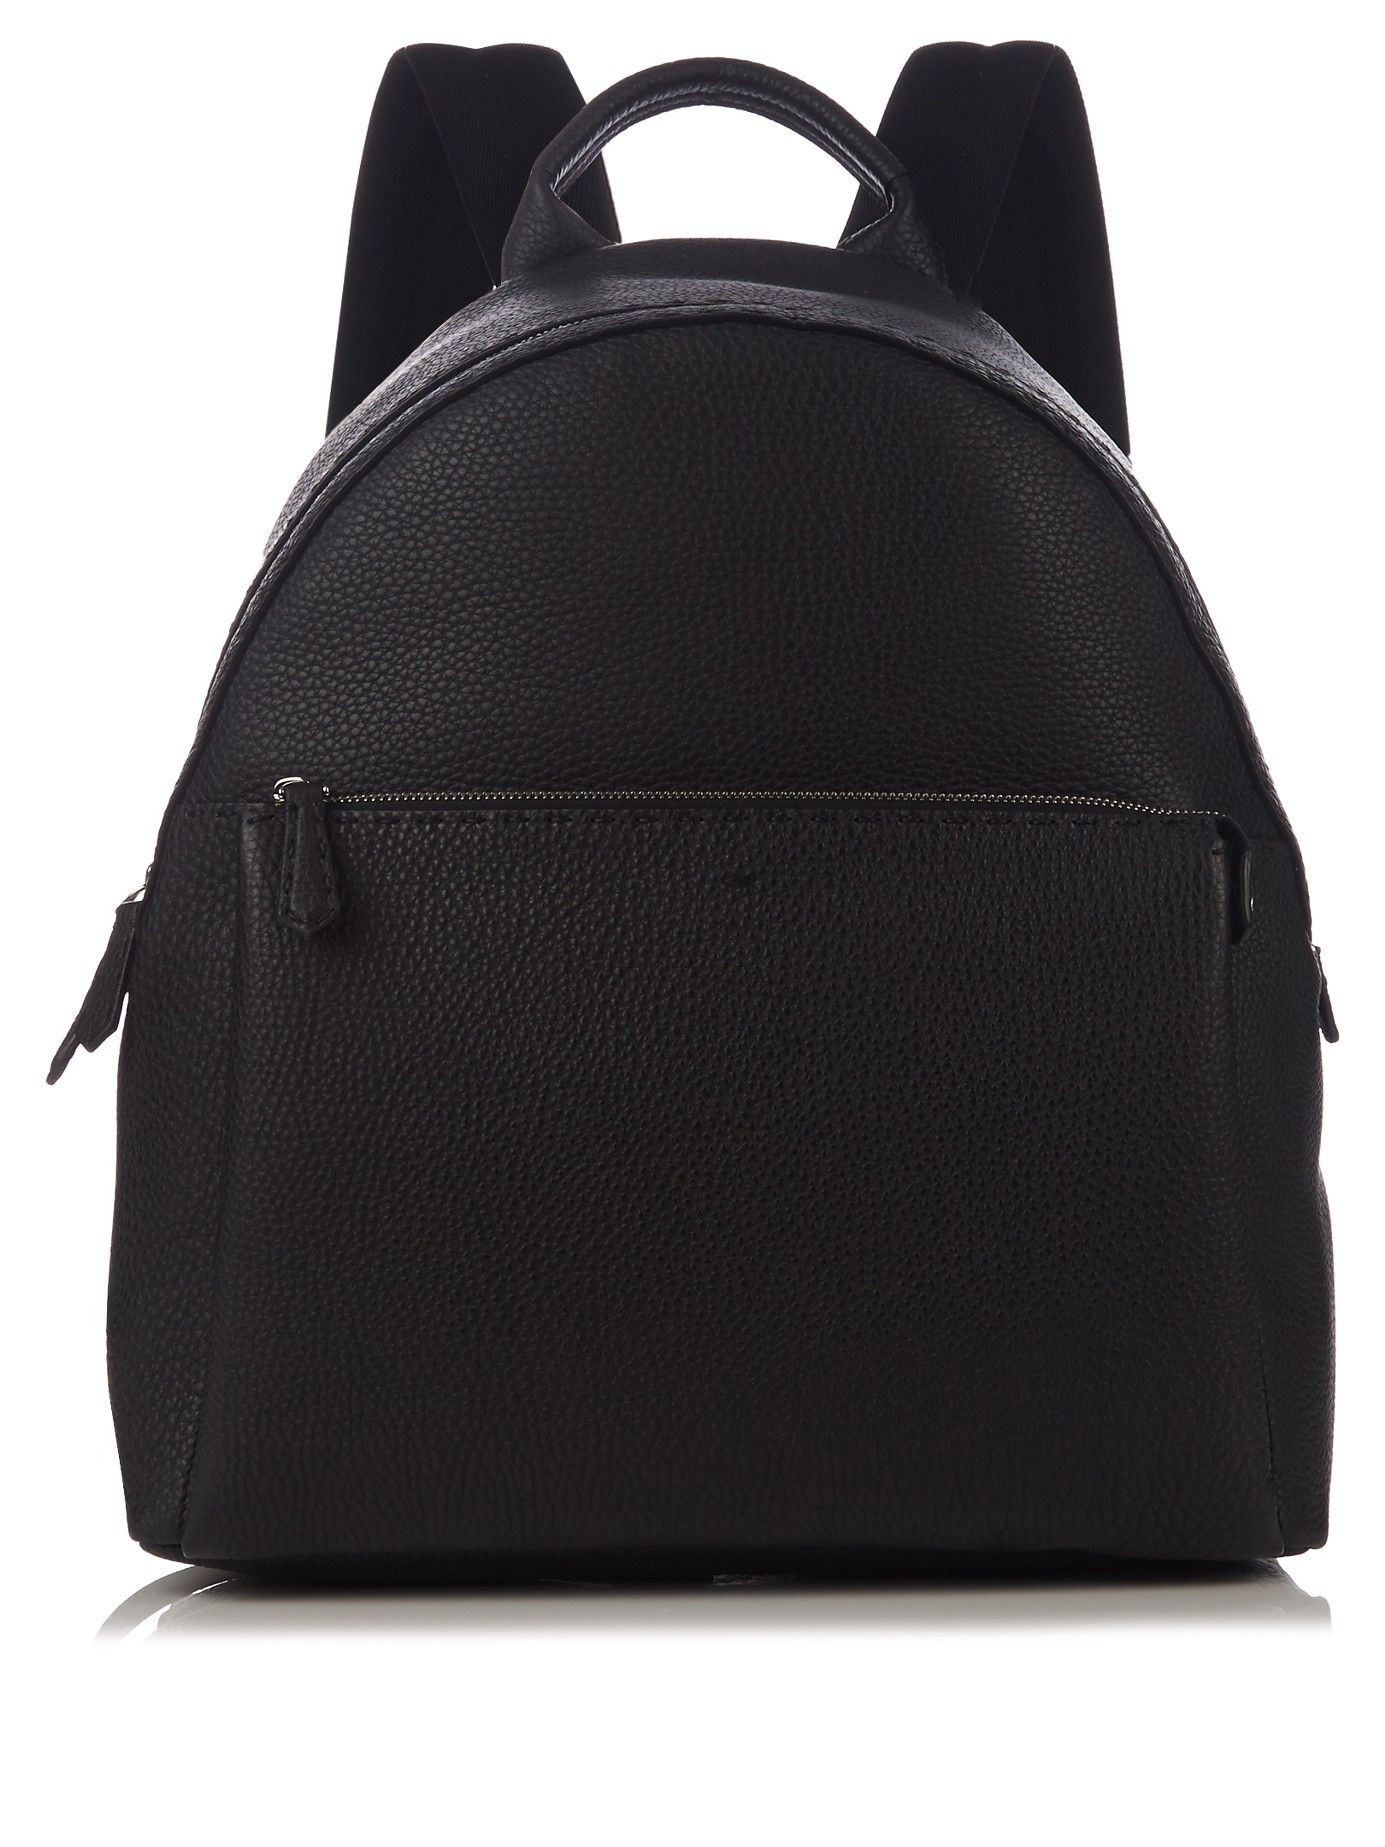 37a7a220c1b Selleria Leather Backpack - Fendi   Bag It Up   Pinterest